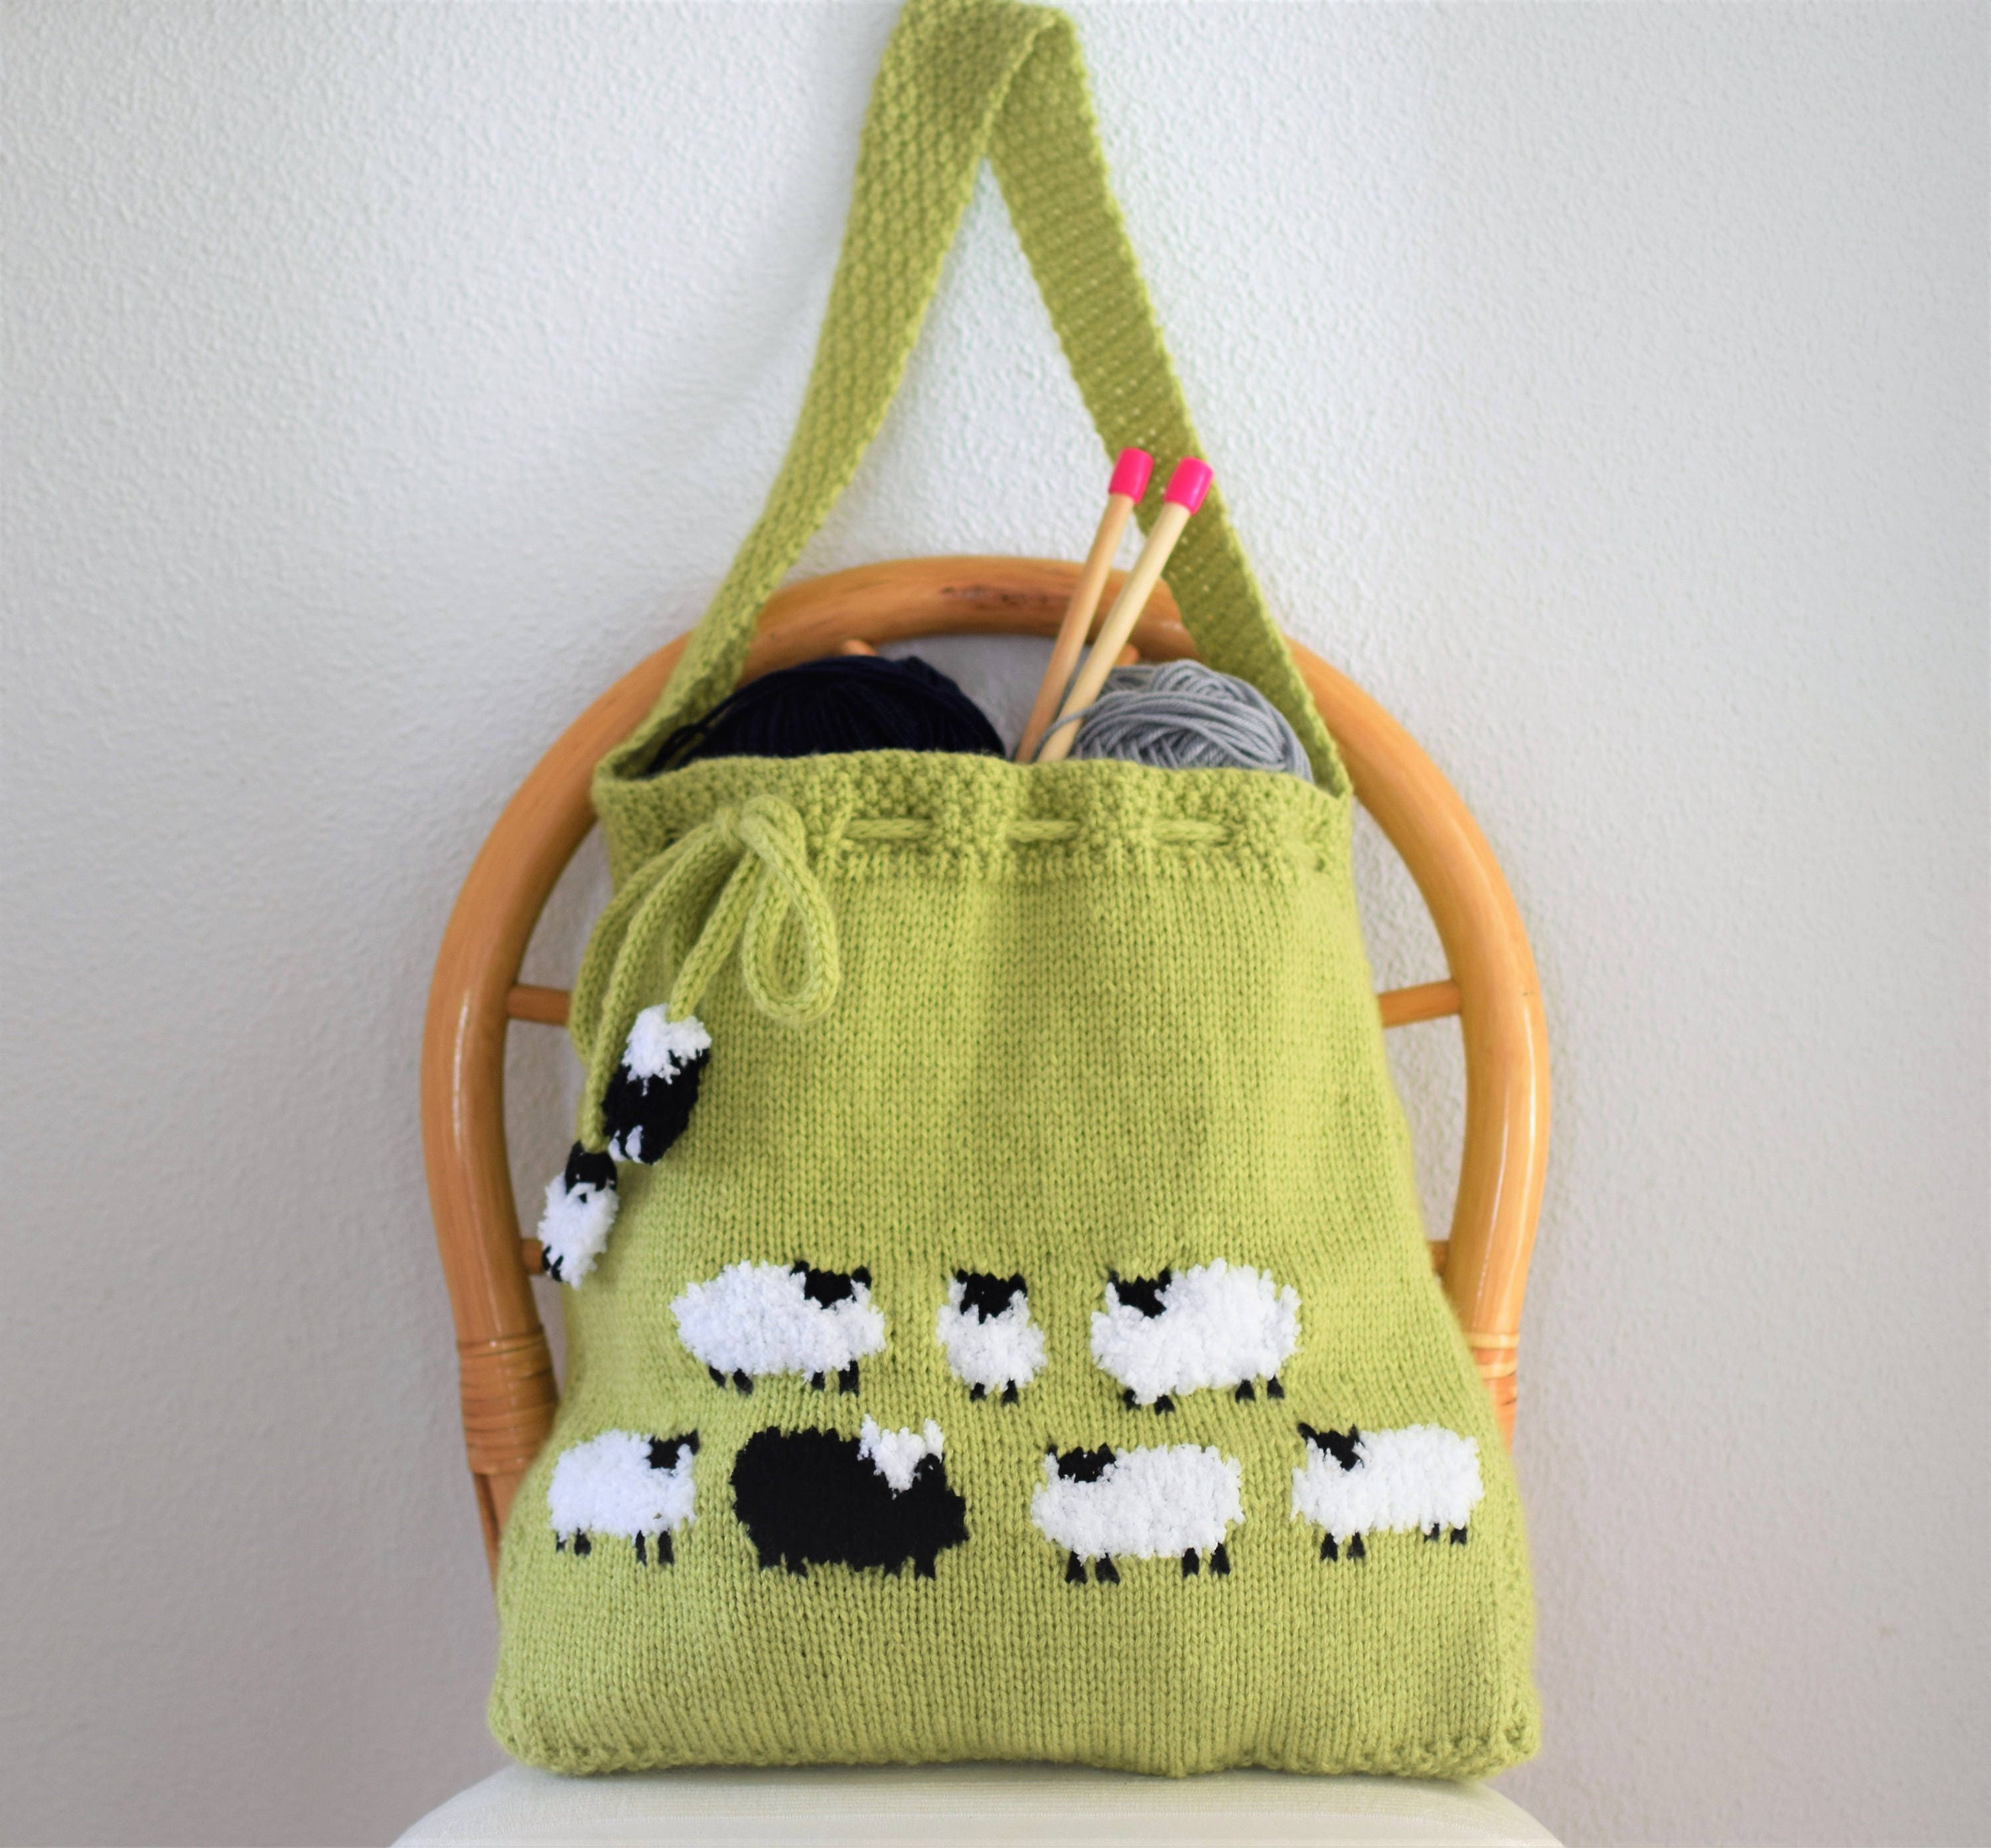 Bag knitting pattern knitting bag pattern handmade tote bag bag knitting pattern knitting bag pattern handmade tote bag sheep shoulder bag sheep handbag knitted sheep bag pdf download bankloansurffo Gallery